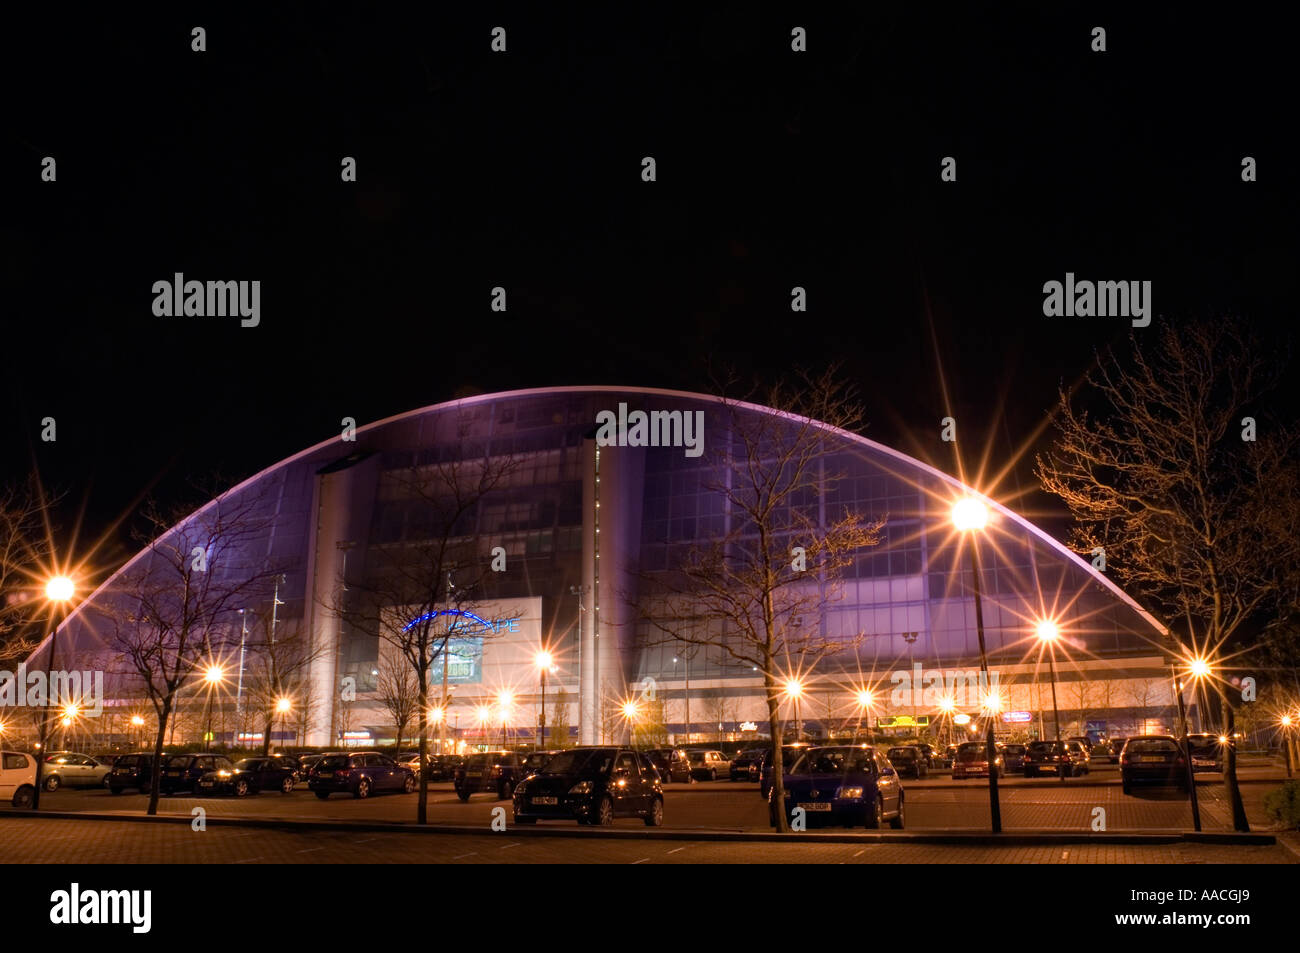 PICTURE CREDIT DOUG BLANE The Xscape building pictured at night in Central Milton Keynes, the Centre MK - Stock Image